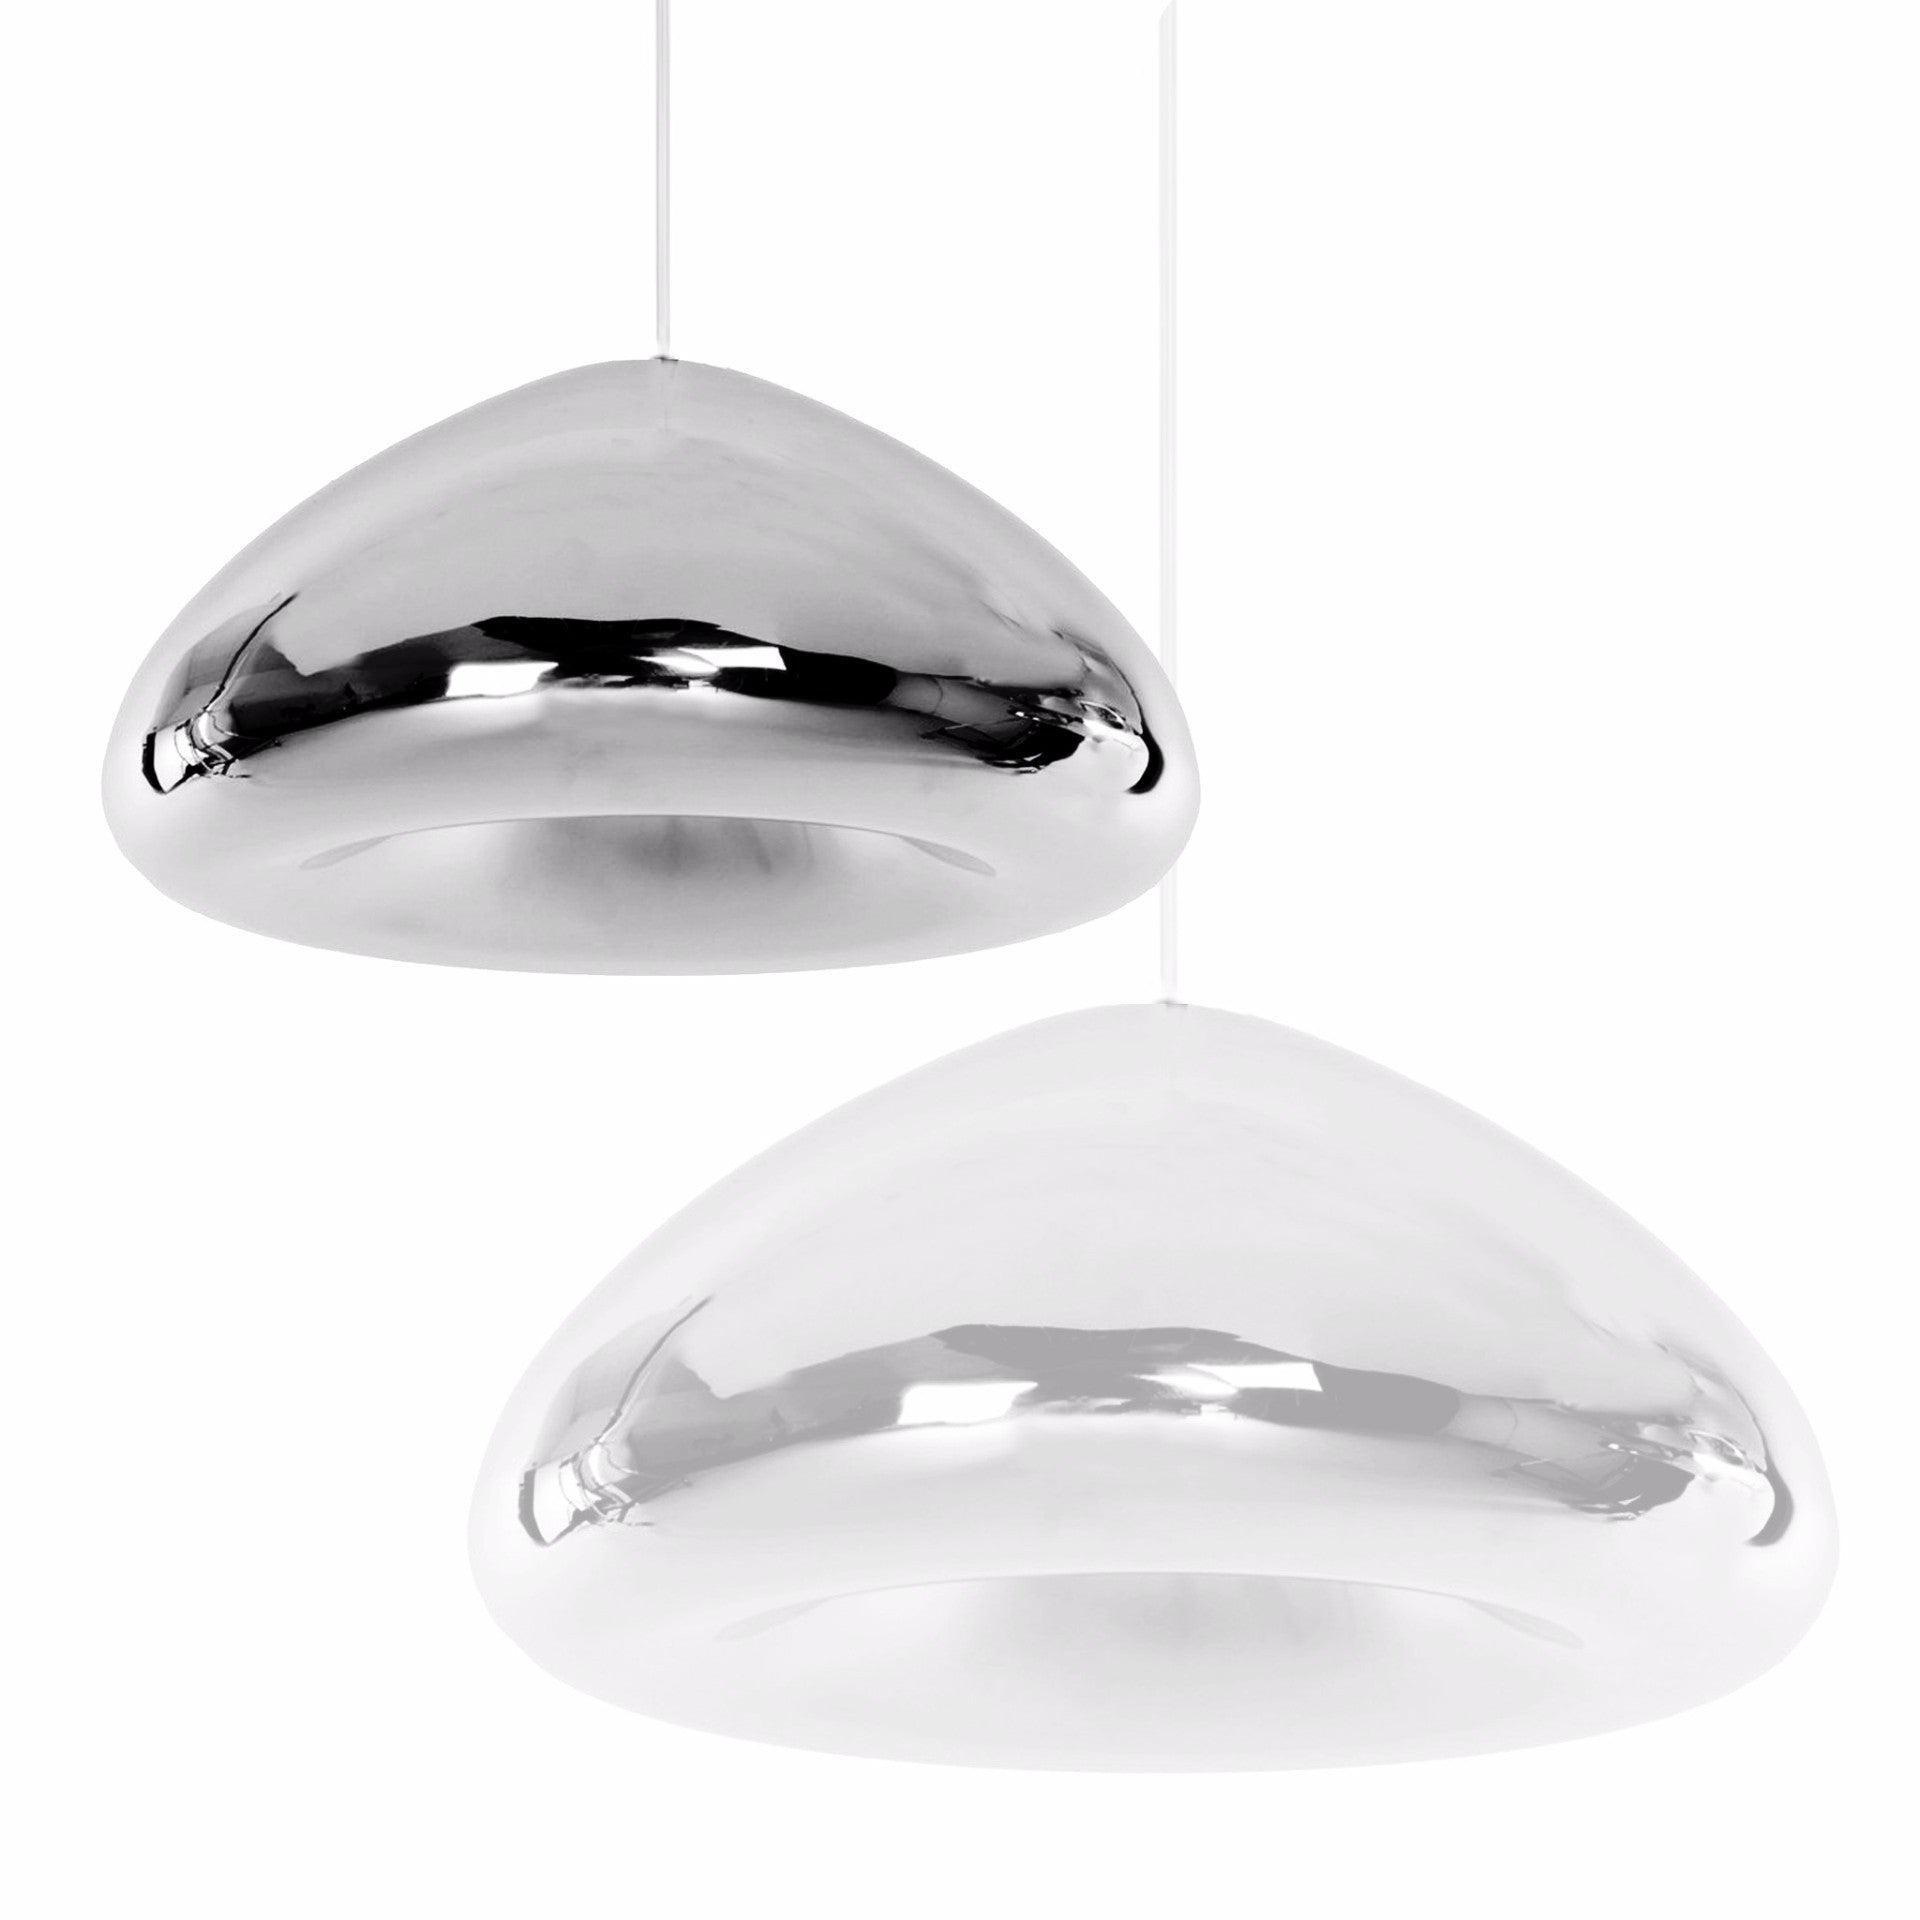 Pendant Lamp - Chrome Glass Pendant Lamp 18cm BP0183-18CH